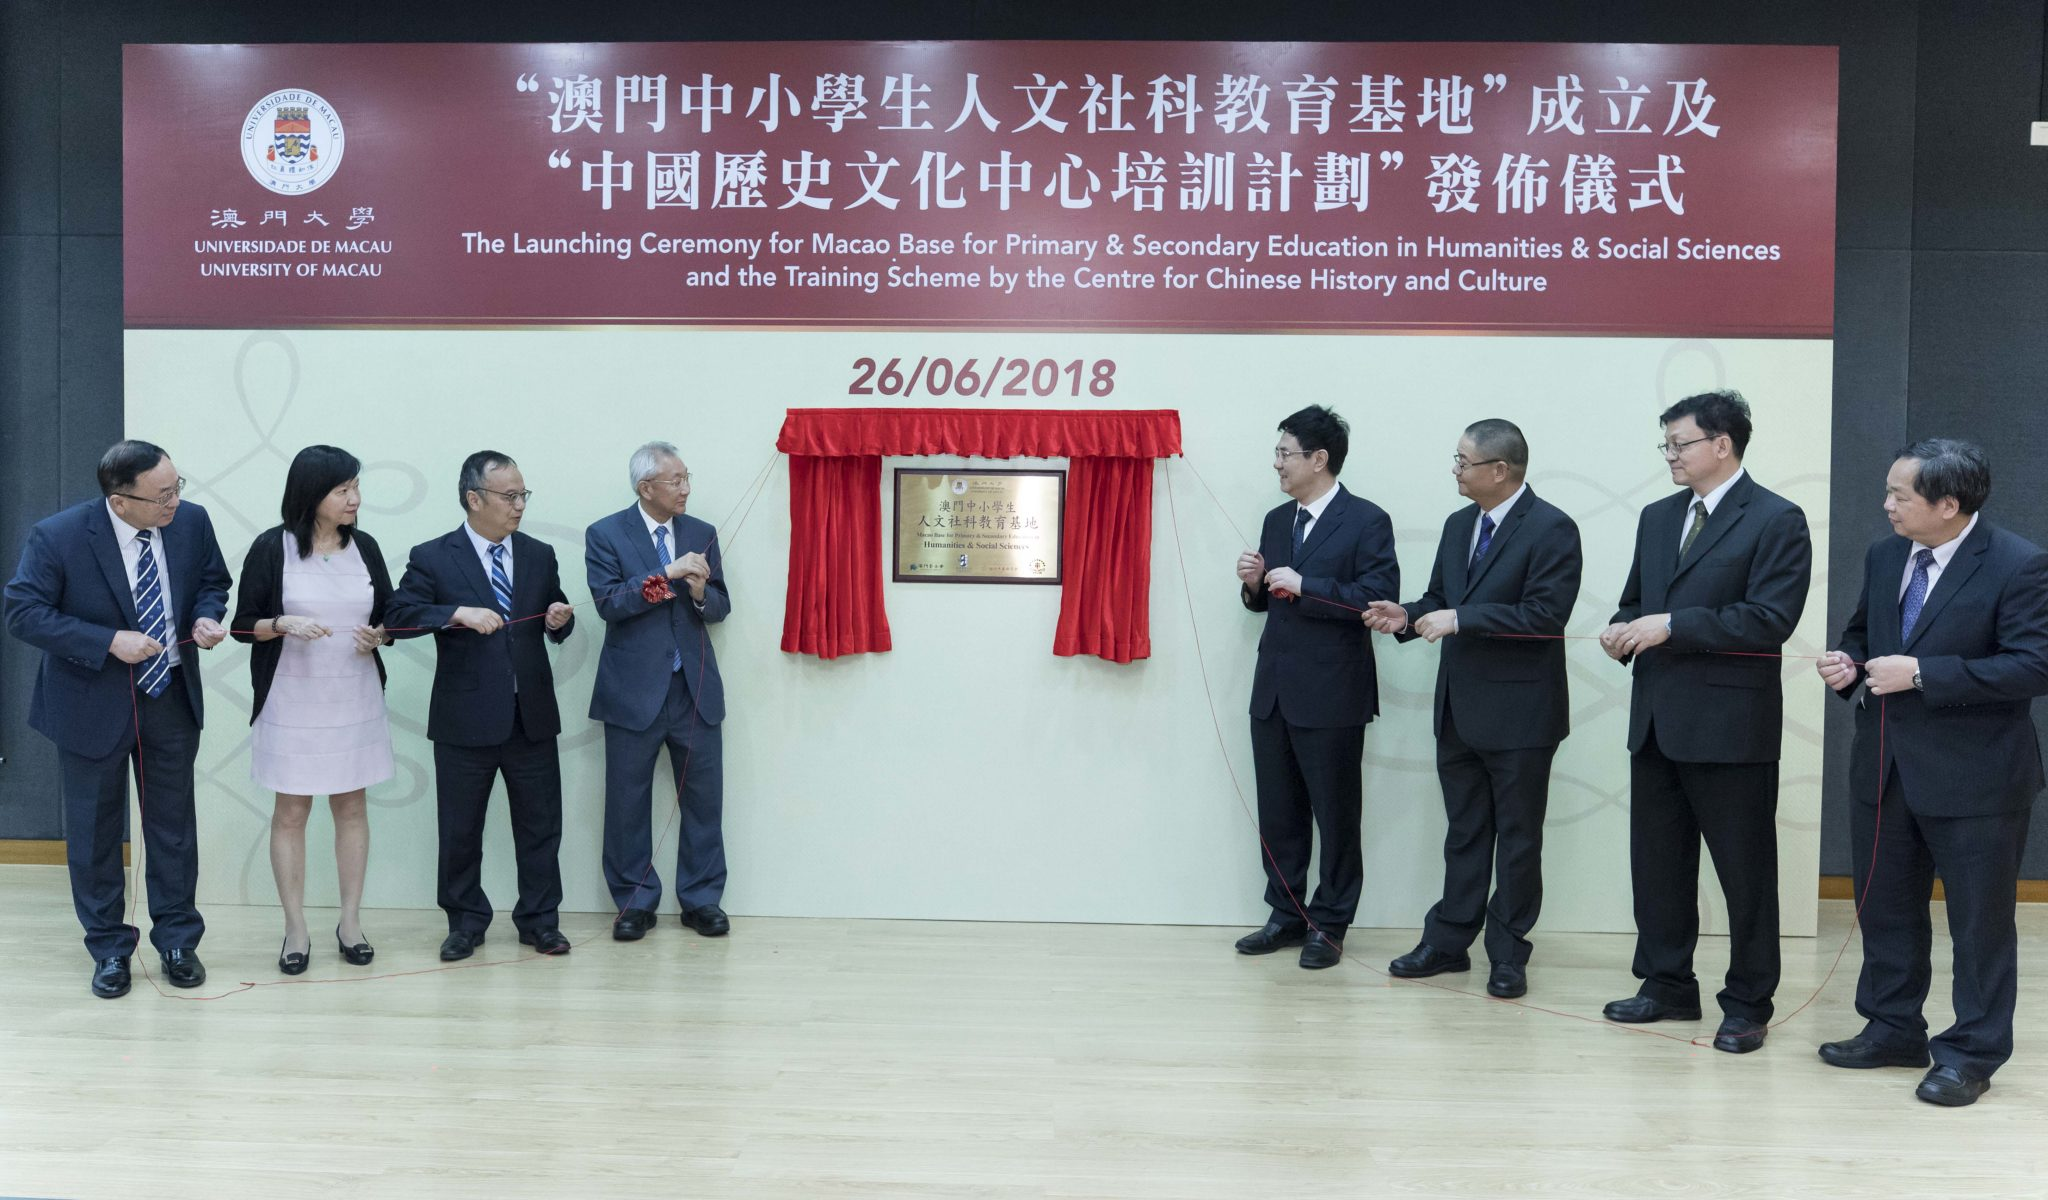 The inauguration ceremony for the Macao Base for Primary & Secondary Education in Humaniti